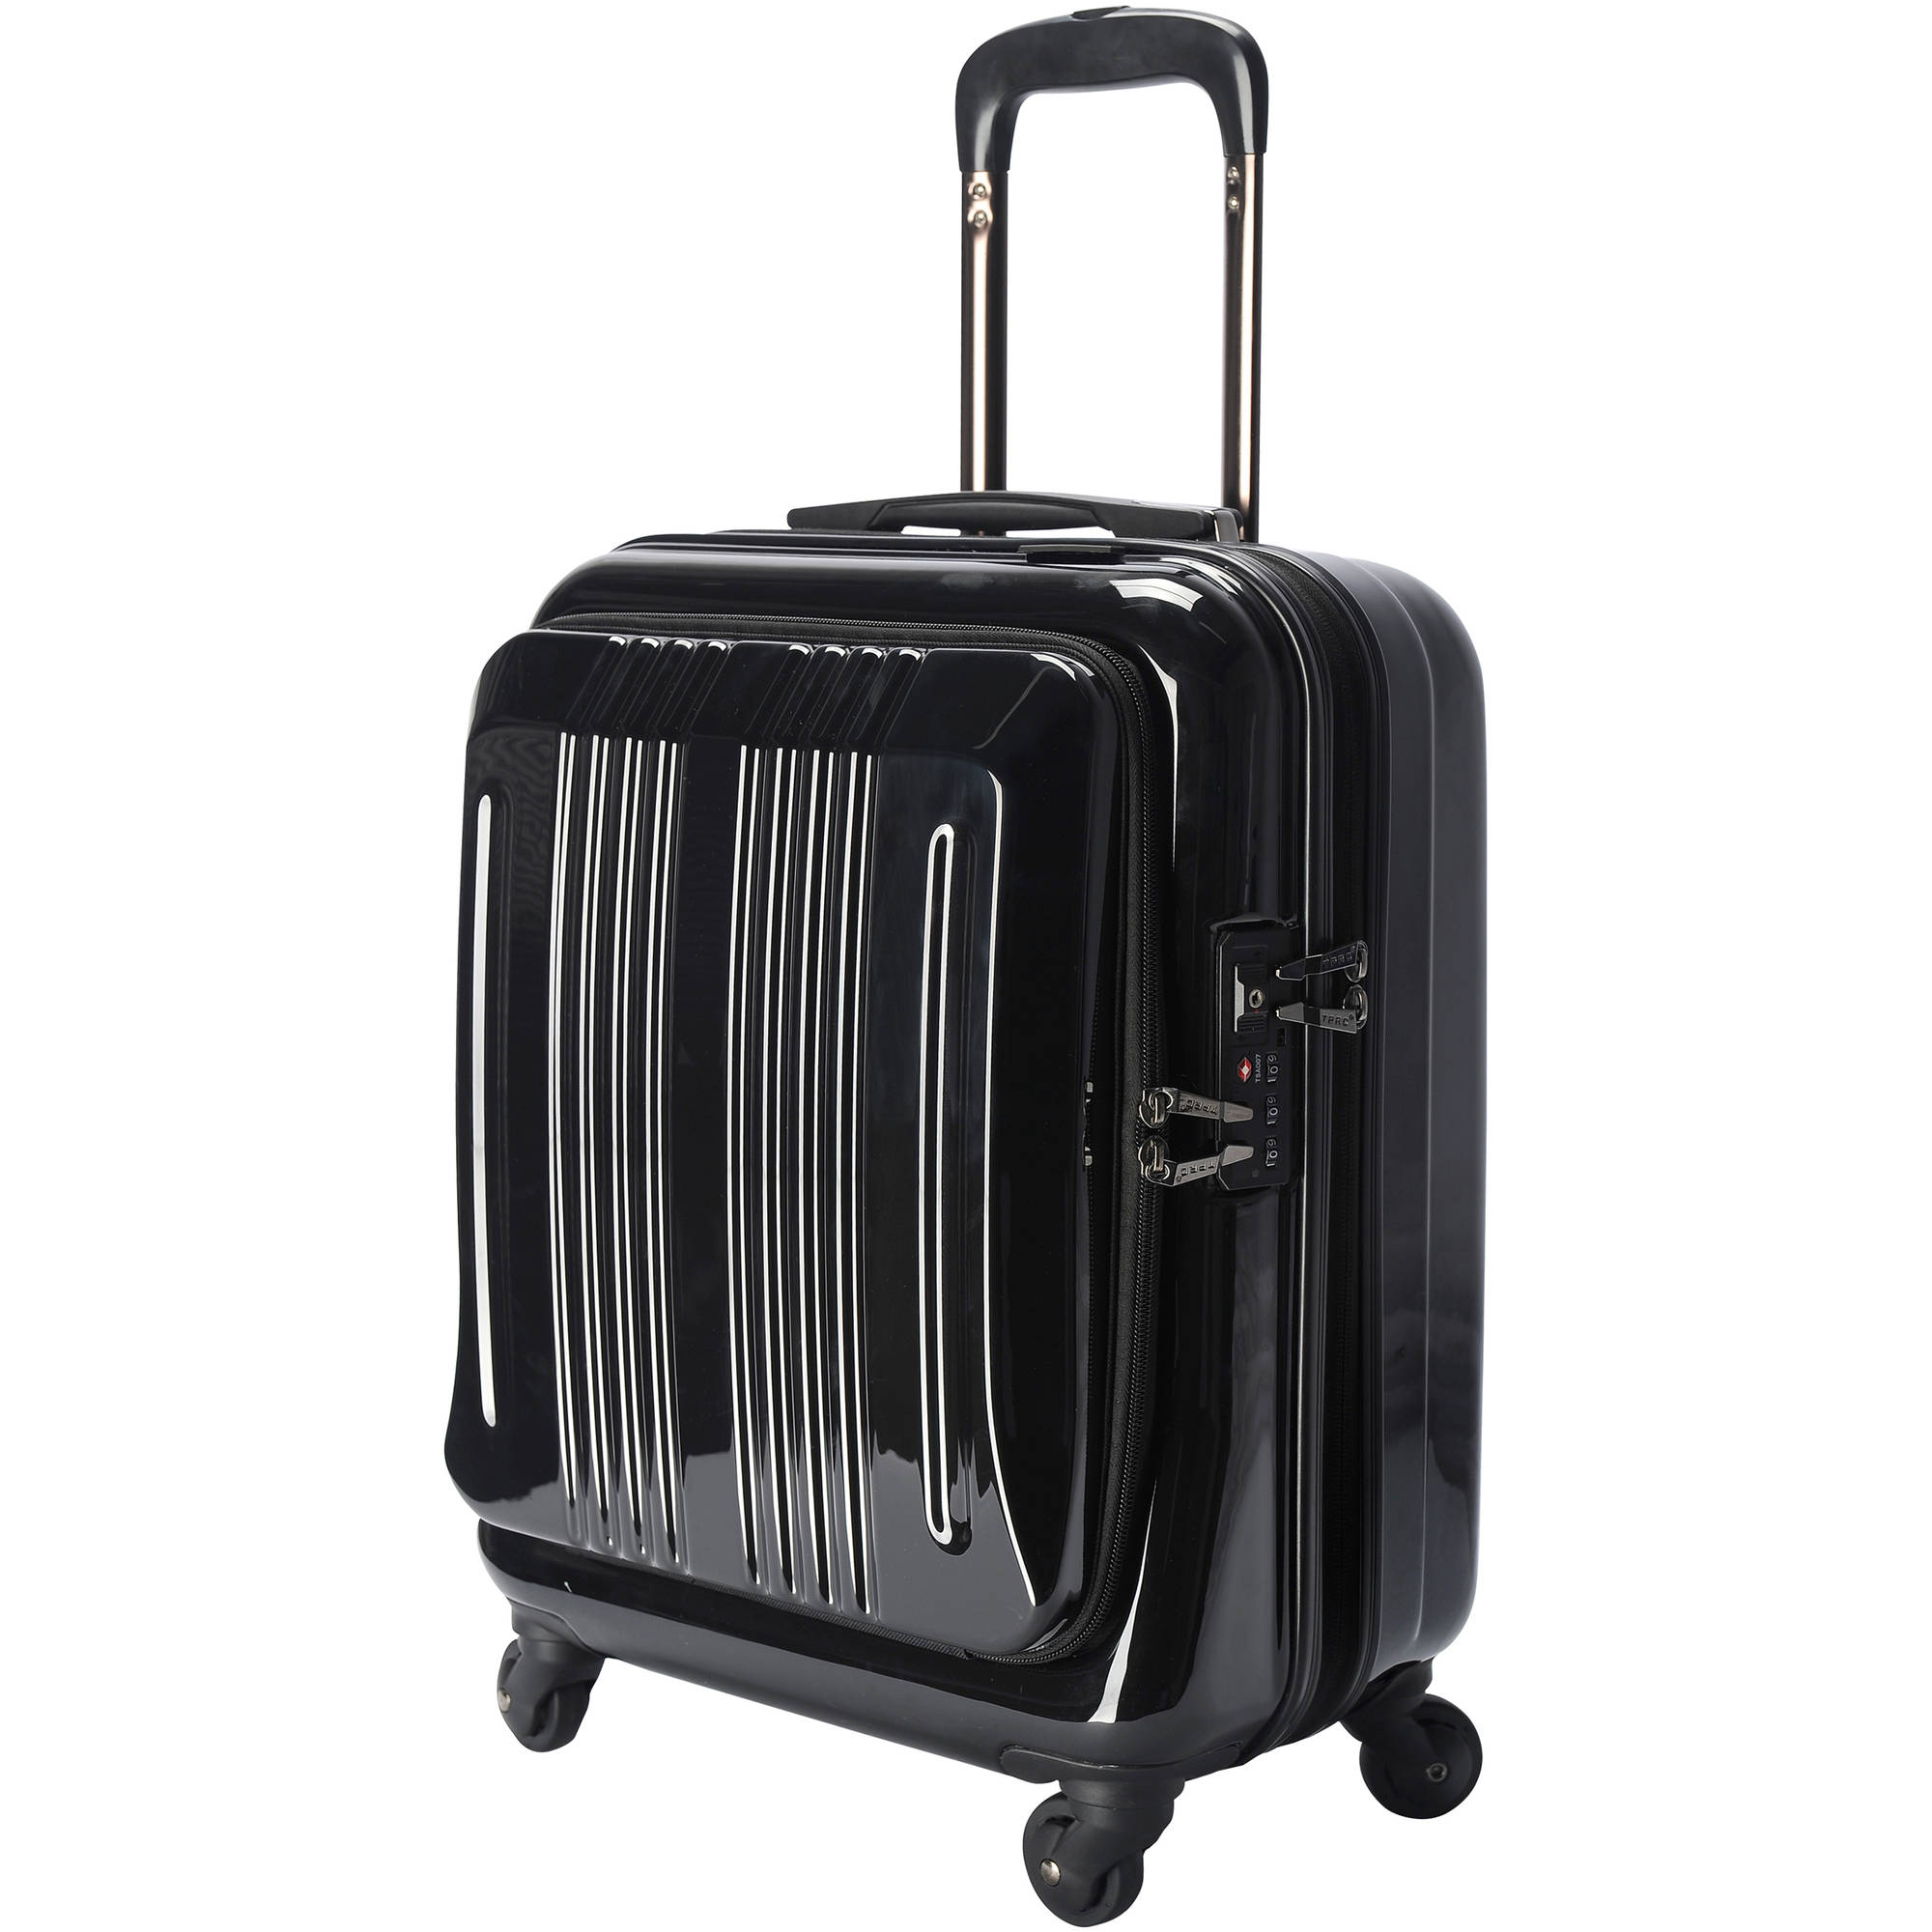 "Protege 18"" Business Rolling Carry-On Luggage"